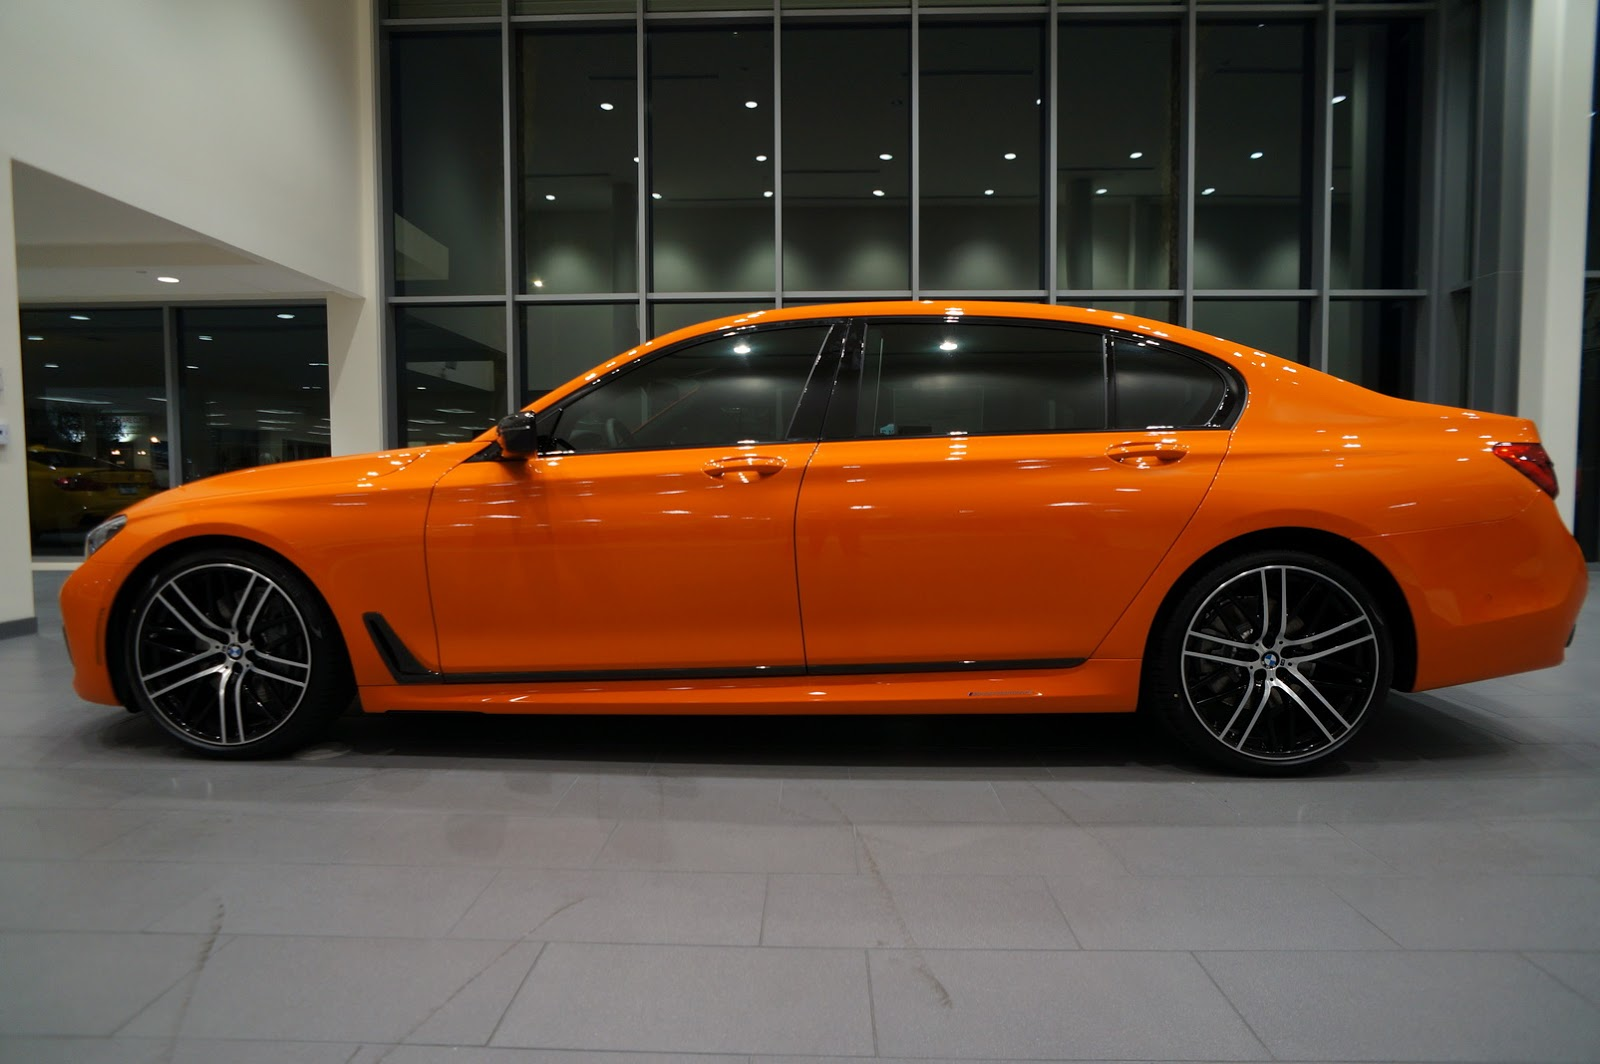 BMW_750i_Fire_Orange_27